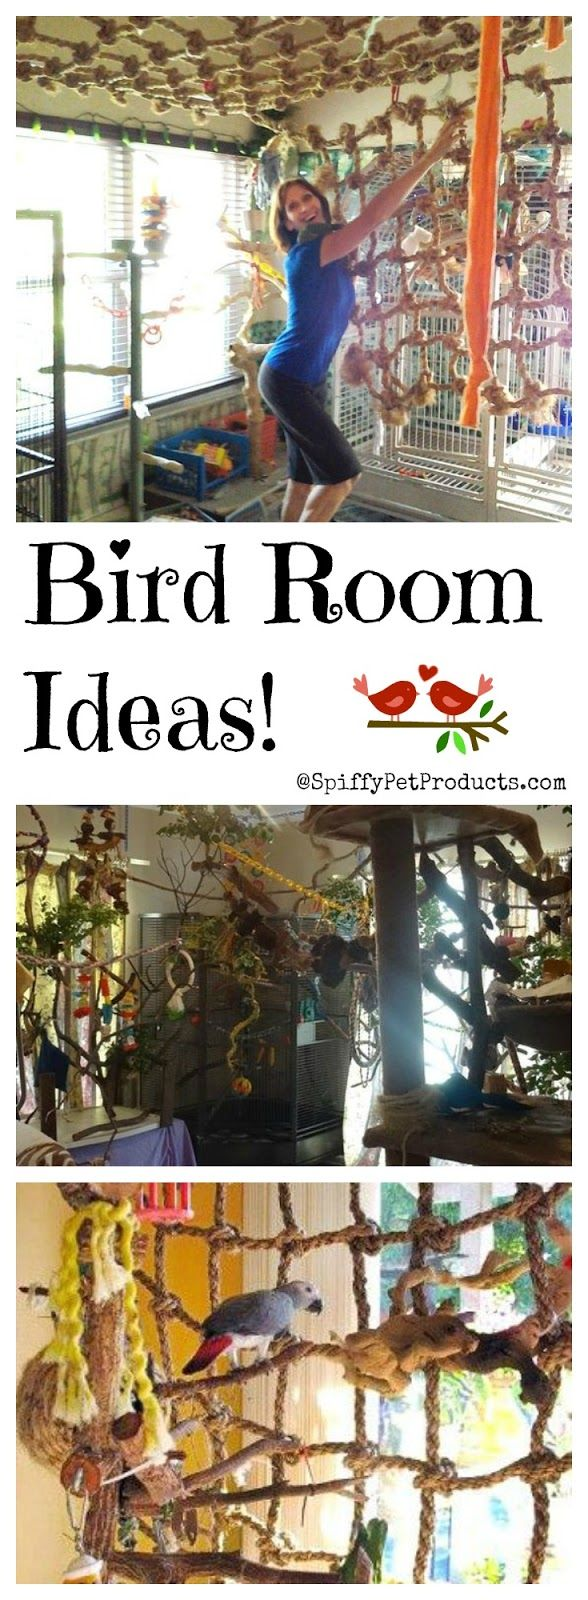 Spiffy Pet Products: Bird Room Ideas Are Addictive... You Have Been Warned!